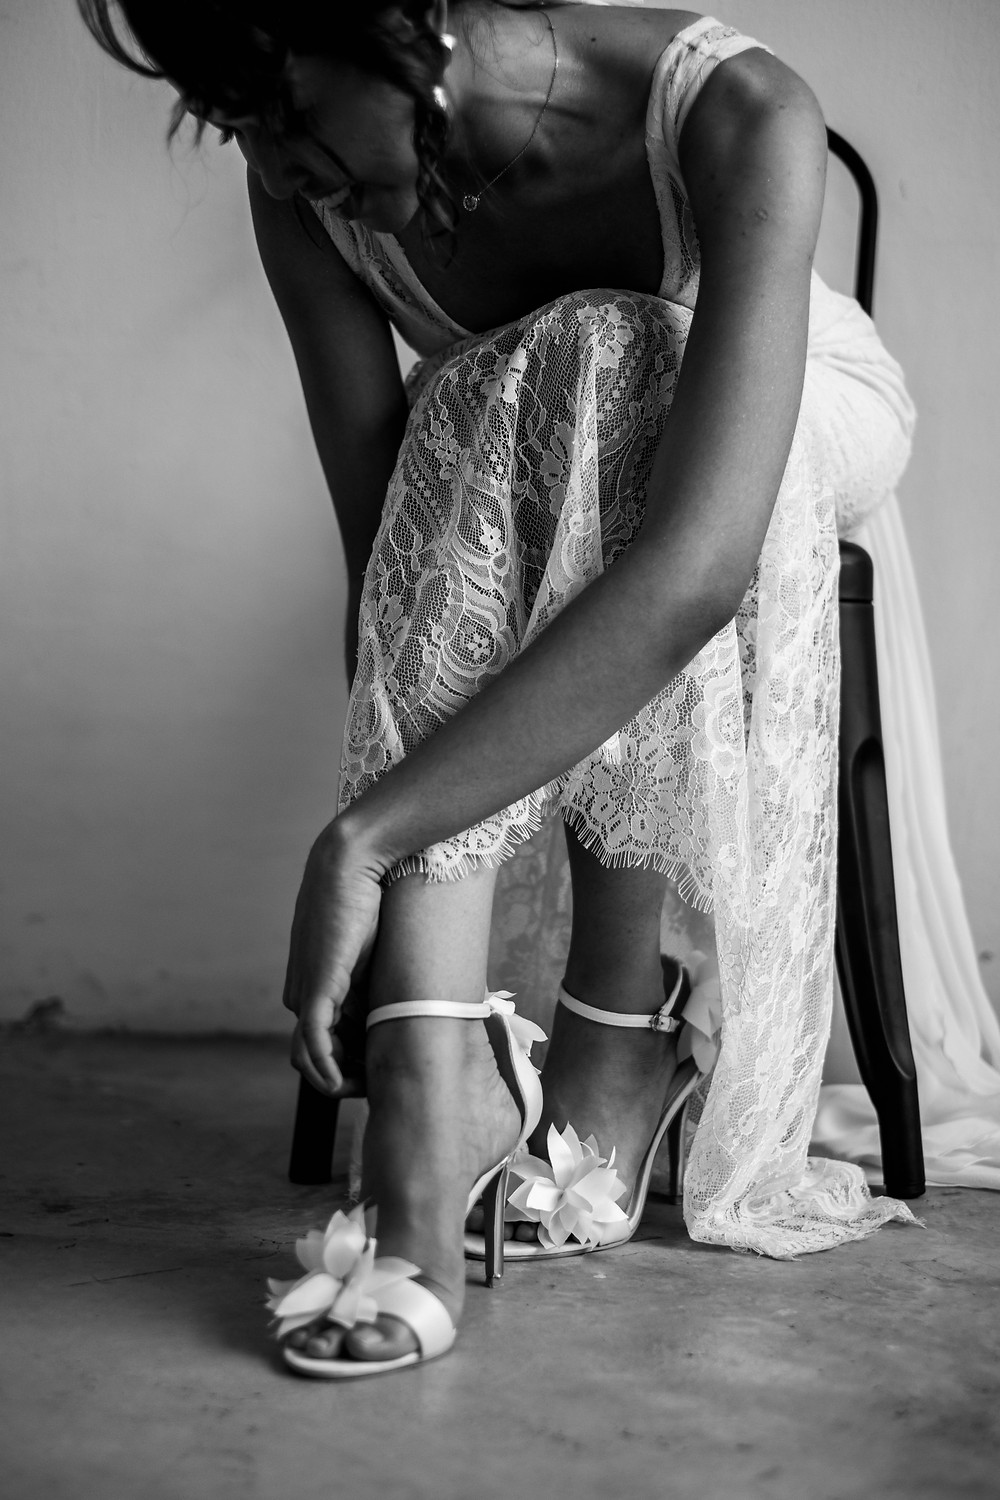 Shoes - The White Atelier, Photo @roobansacci